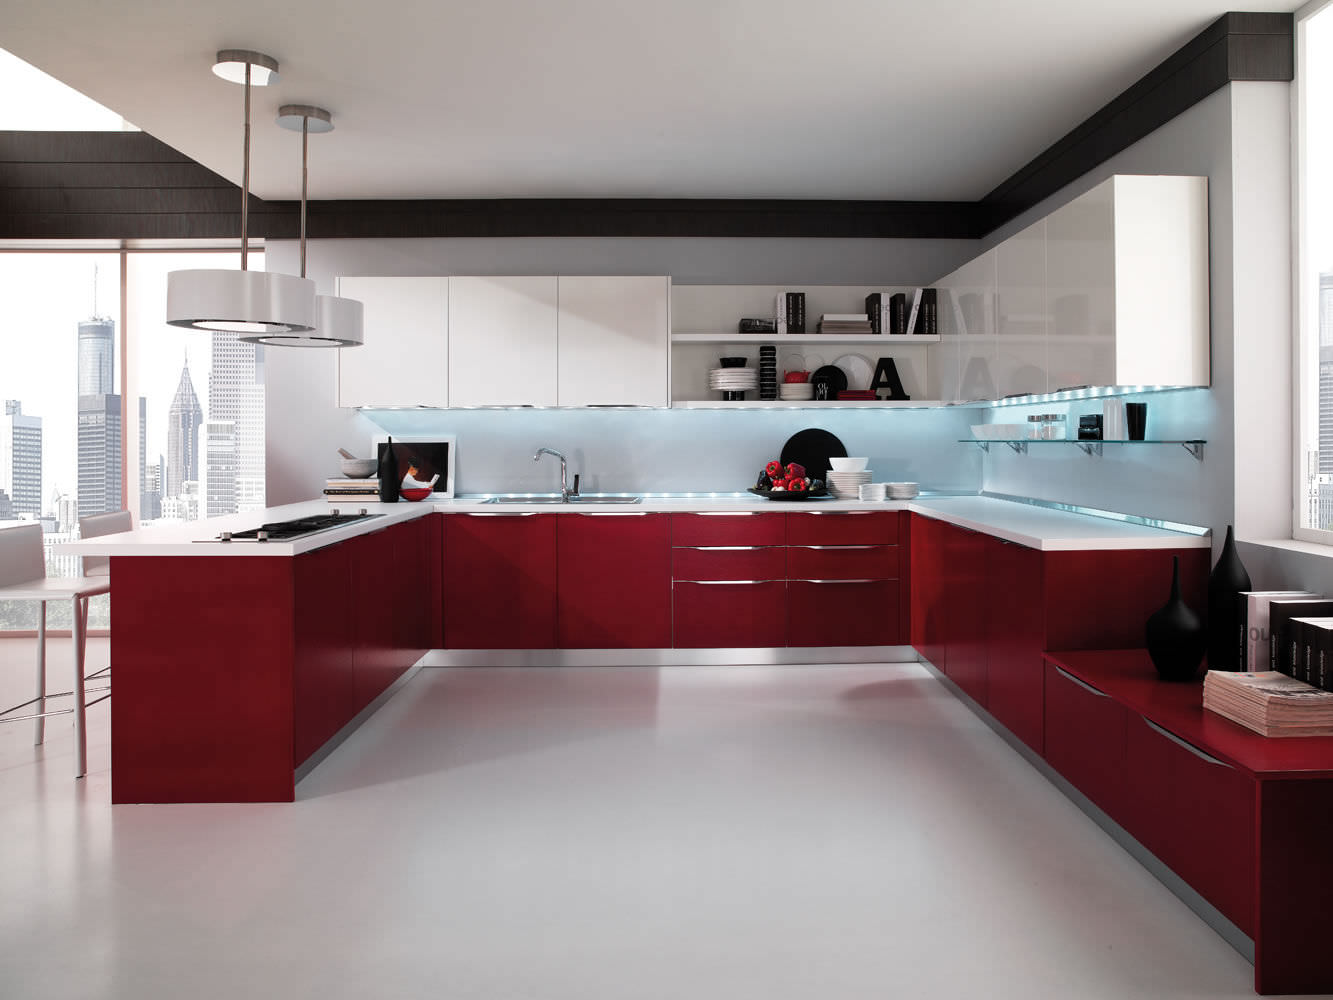 High gloss kitchen cabinet design ideas 2015 kitchen for High gloss kitchen cabinets